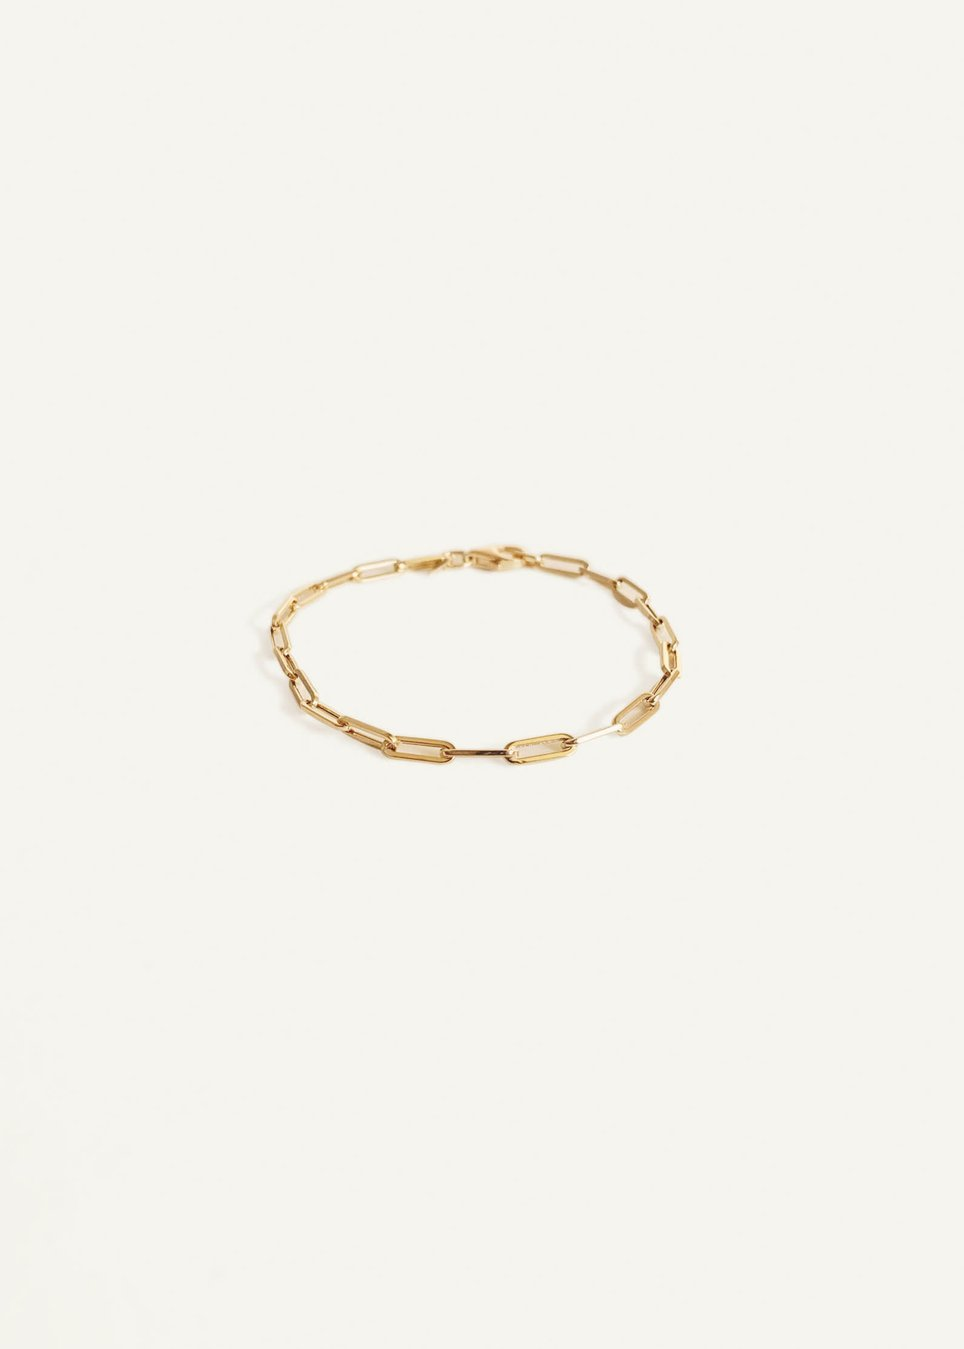 Kinn Link Chain Bracelet / Neighborhood Goods